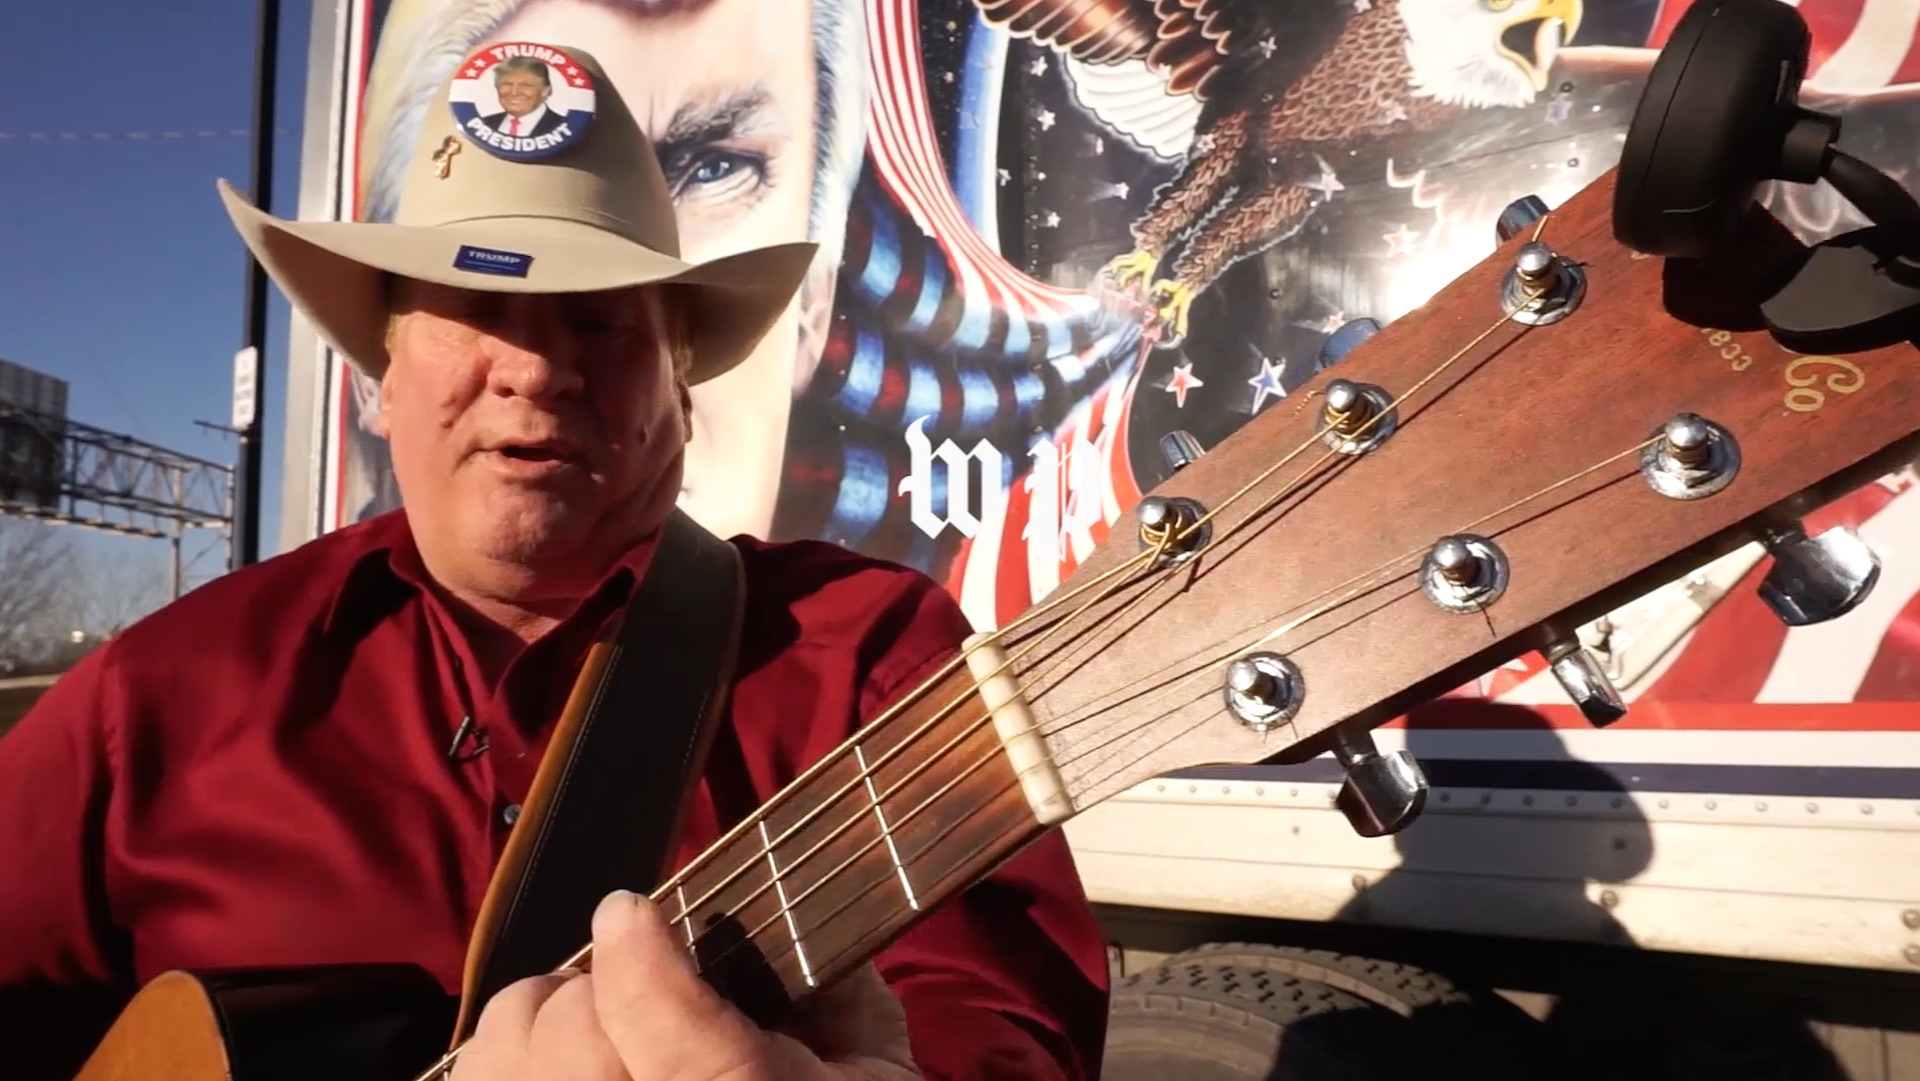 'Trump Troubadour,' who attended 45 Trump rallies to honor his late son, feels 'betrayed' because of health care